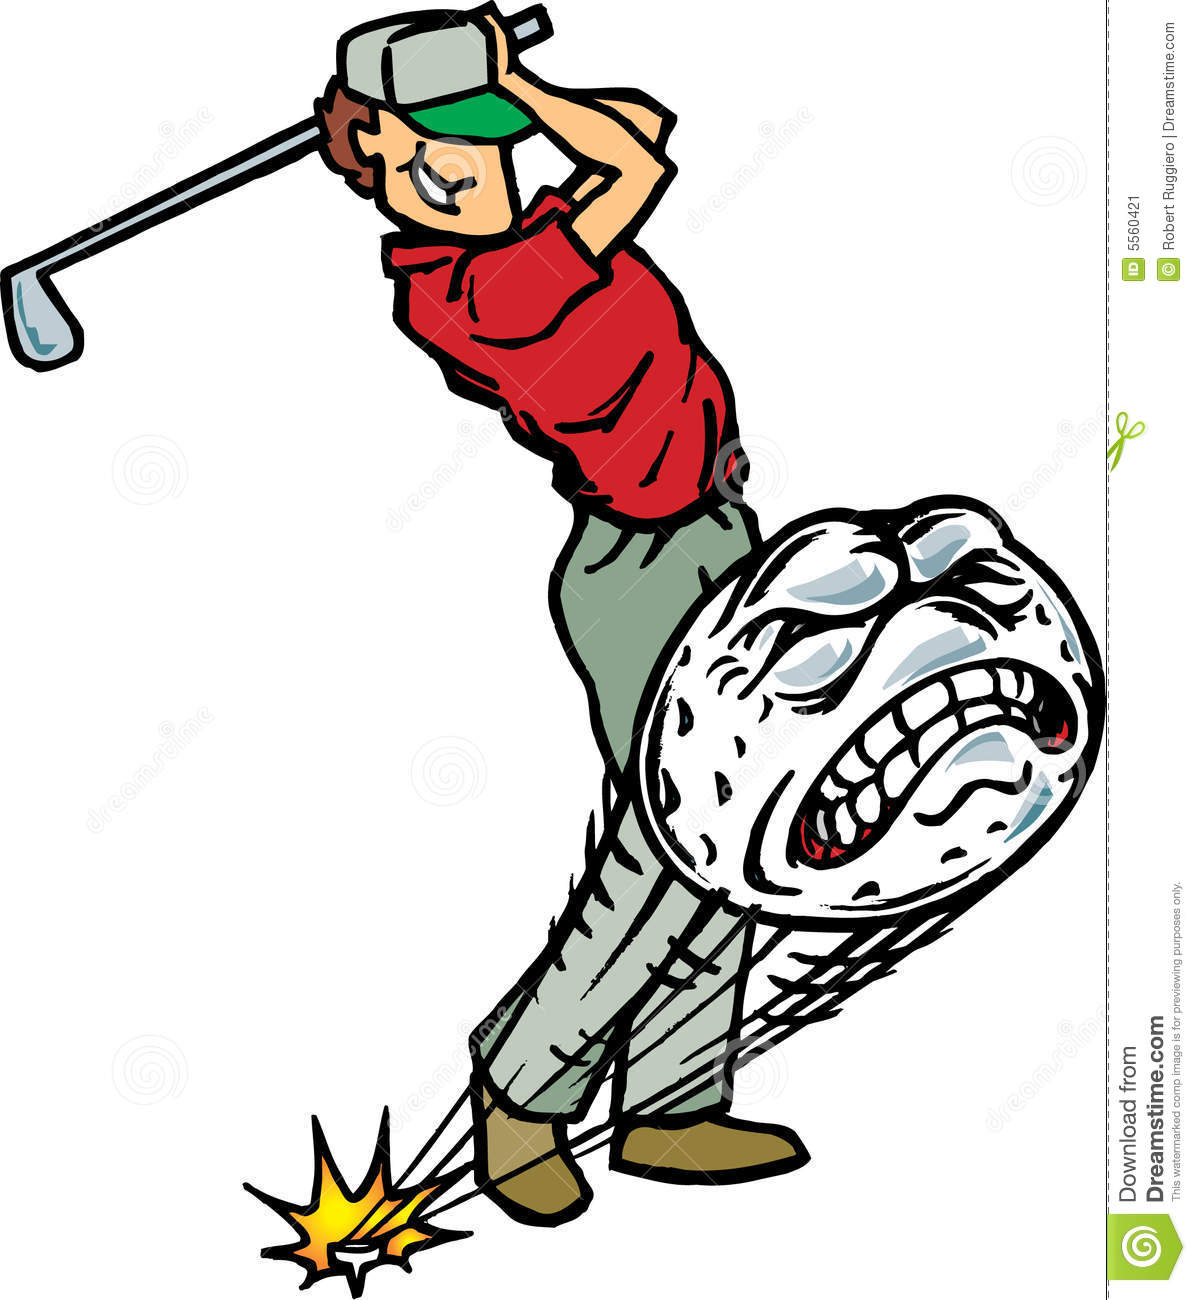 golf-ball-on-tee-clip-art-golfer-hitting-golfball-5560421.jpg